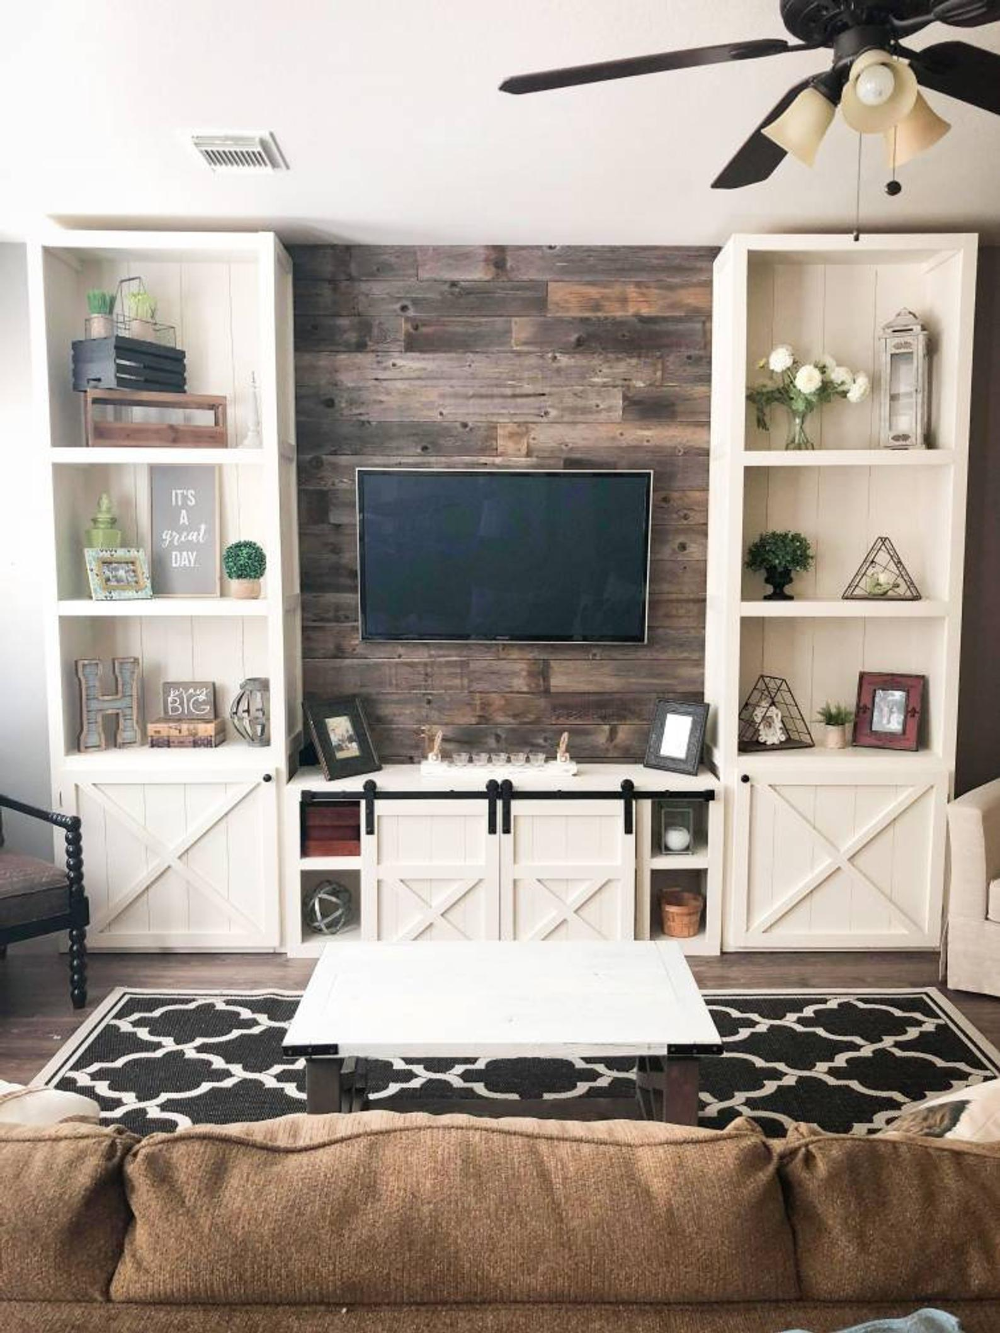 House House Tv Unit Design Modern Living Big Hit Entertainment Edificio Blog Design In 2020 Farm House Living Room Living Room Built Ins Living Room Entertainment